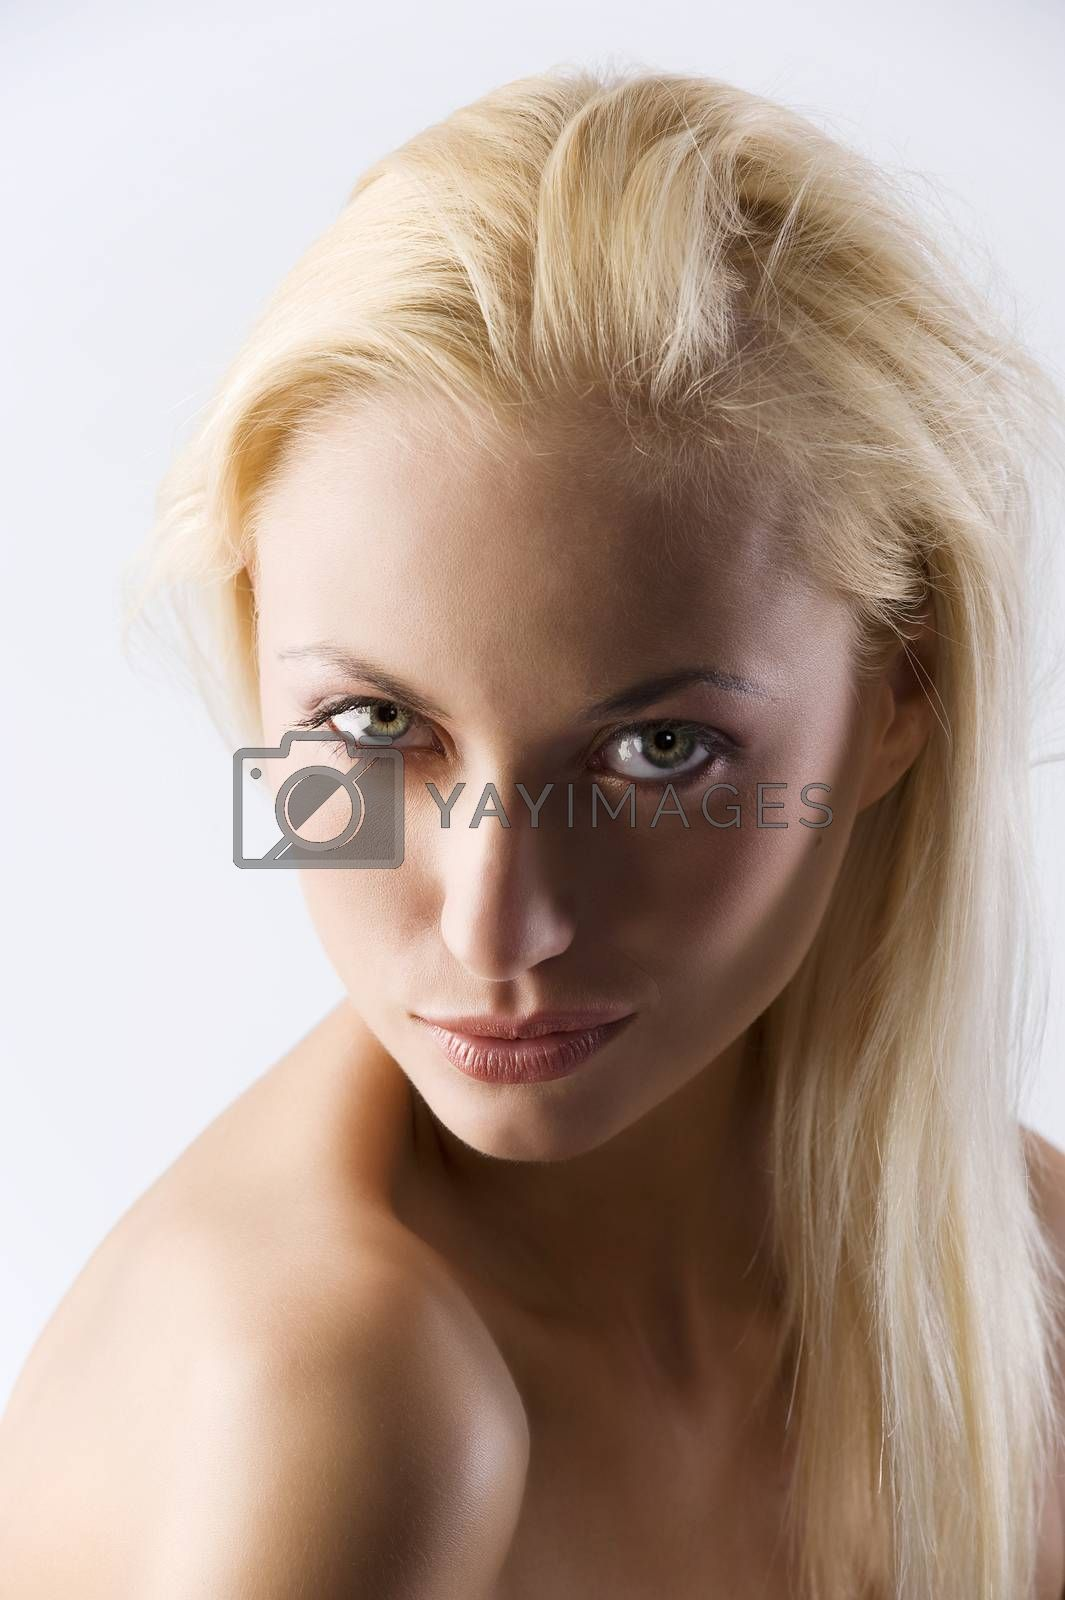 Royalty free image of naked shoulder by fotoCD